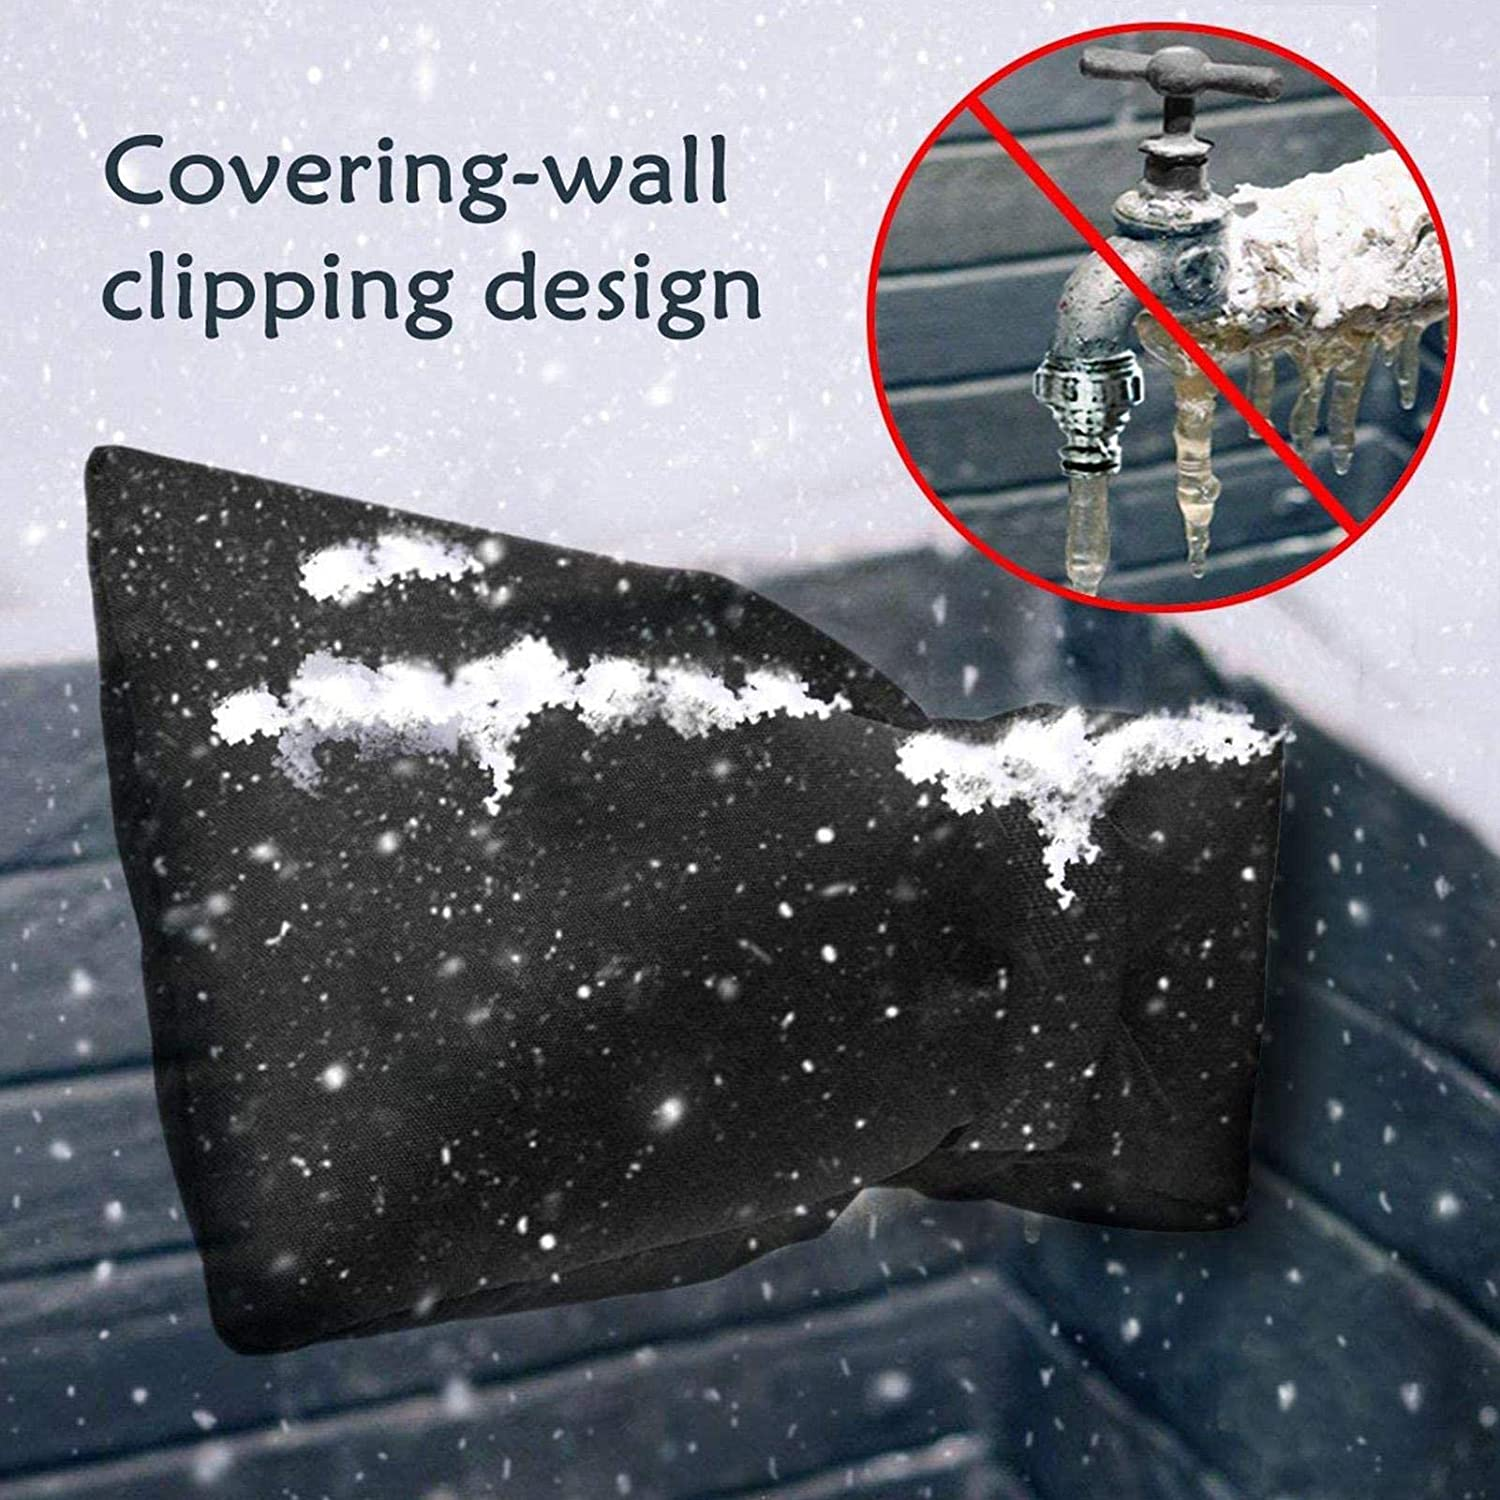 Insulated Spigot Cover for Winter N//Q Winter Faucet Cover Rainproof Thicker Reusable Faucet Freeze Protector Outdoor Faucet Covers for Winter Freeze Protection